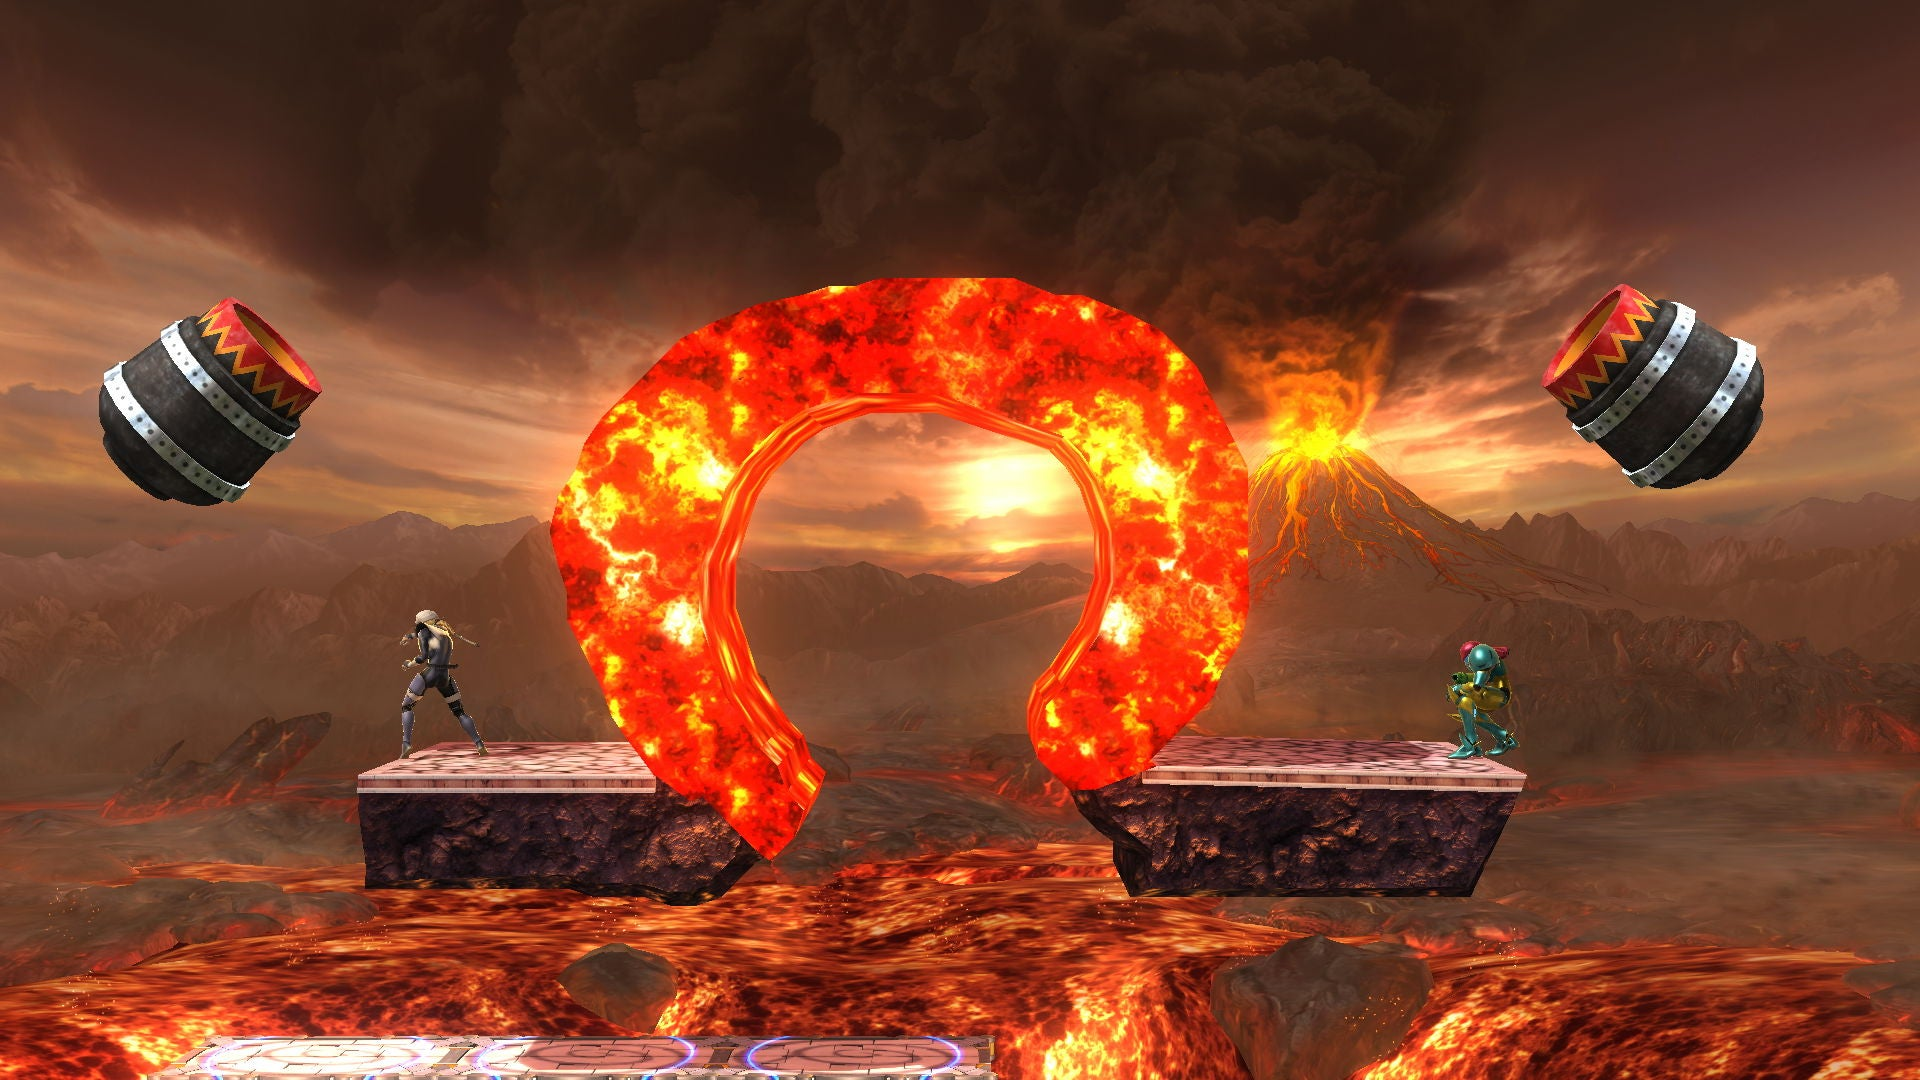 The Coolest Custom Stages For Super Smash Bros. Wii U (So Far)